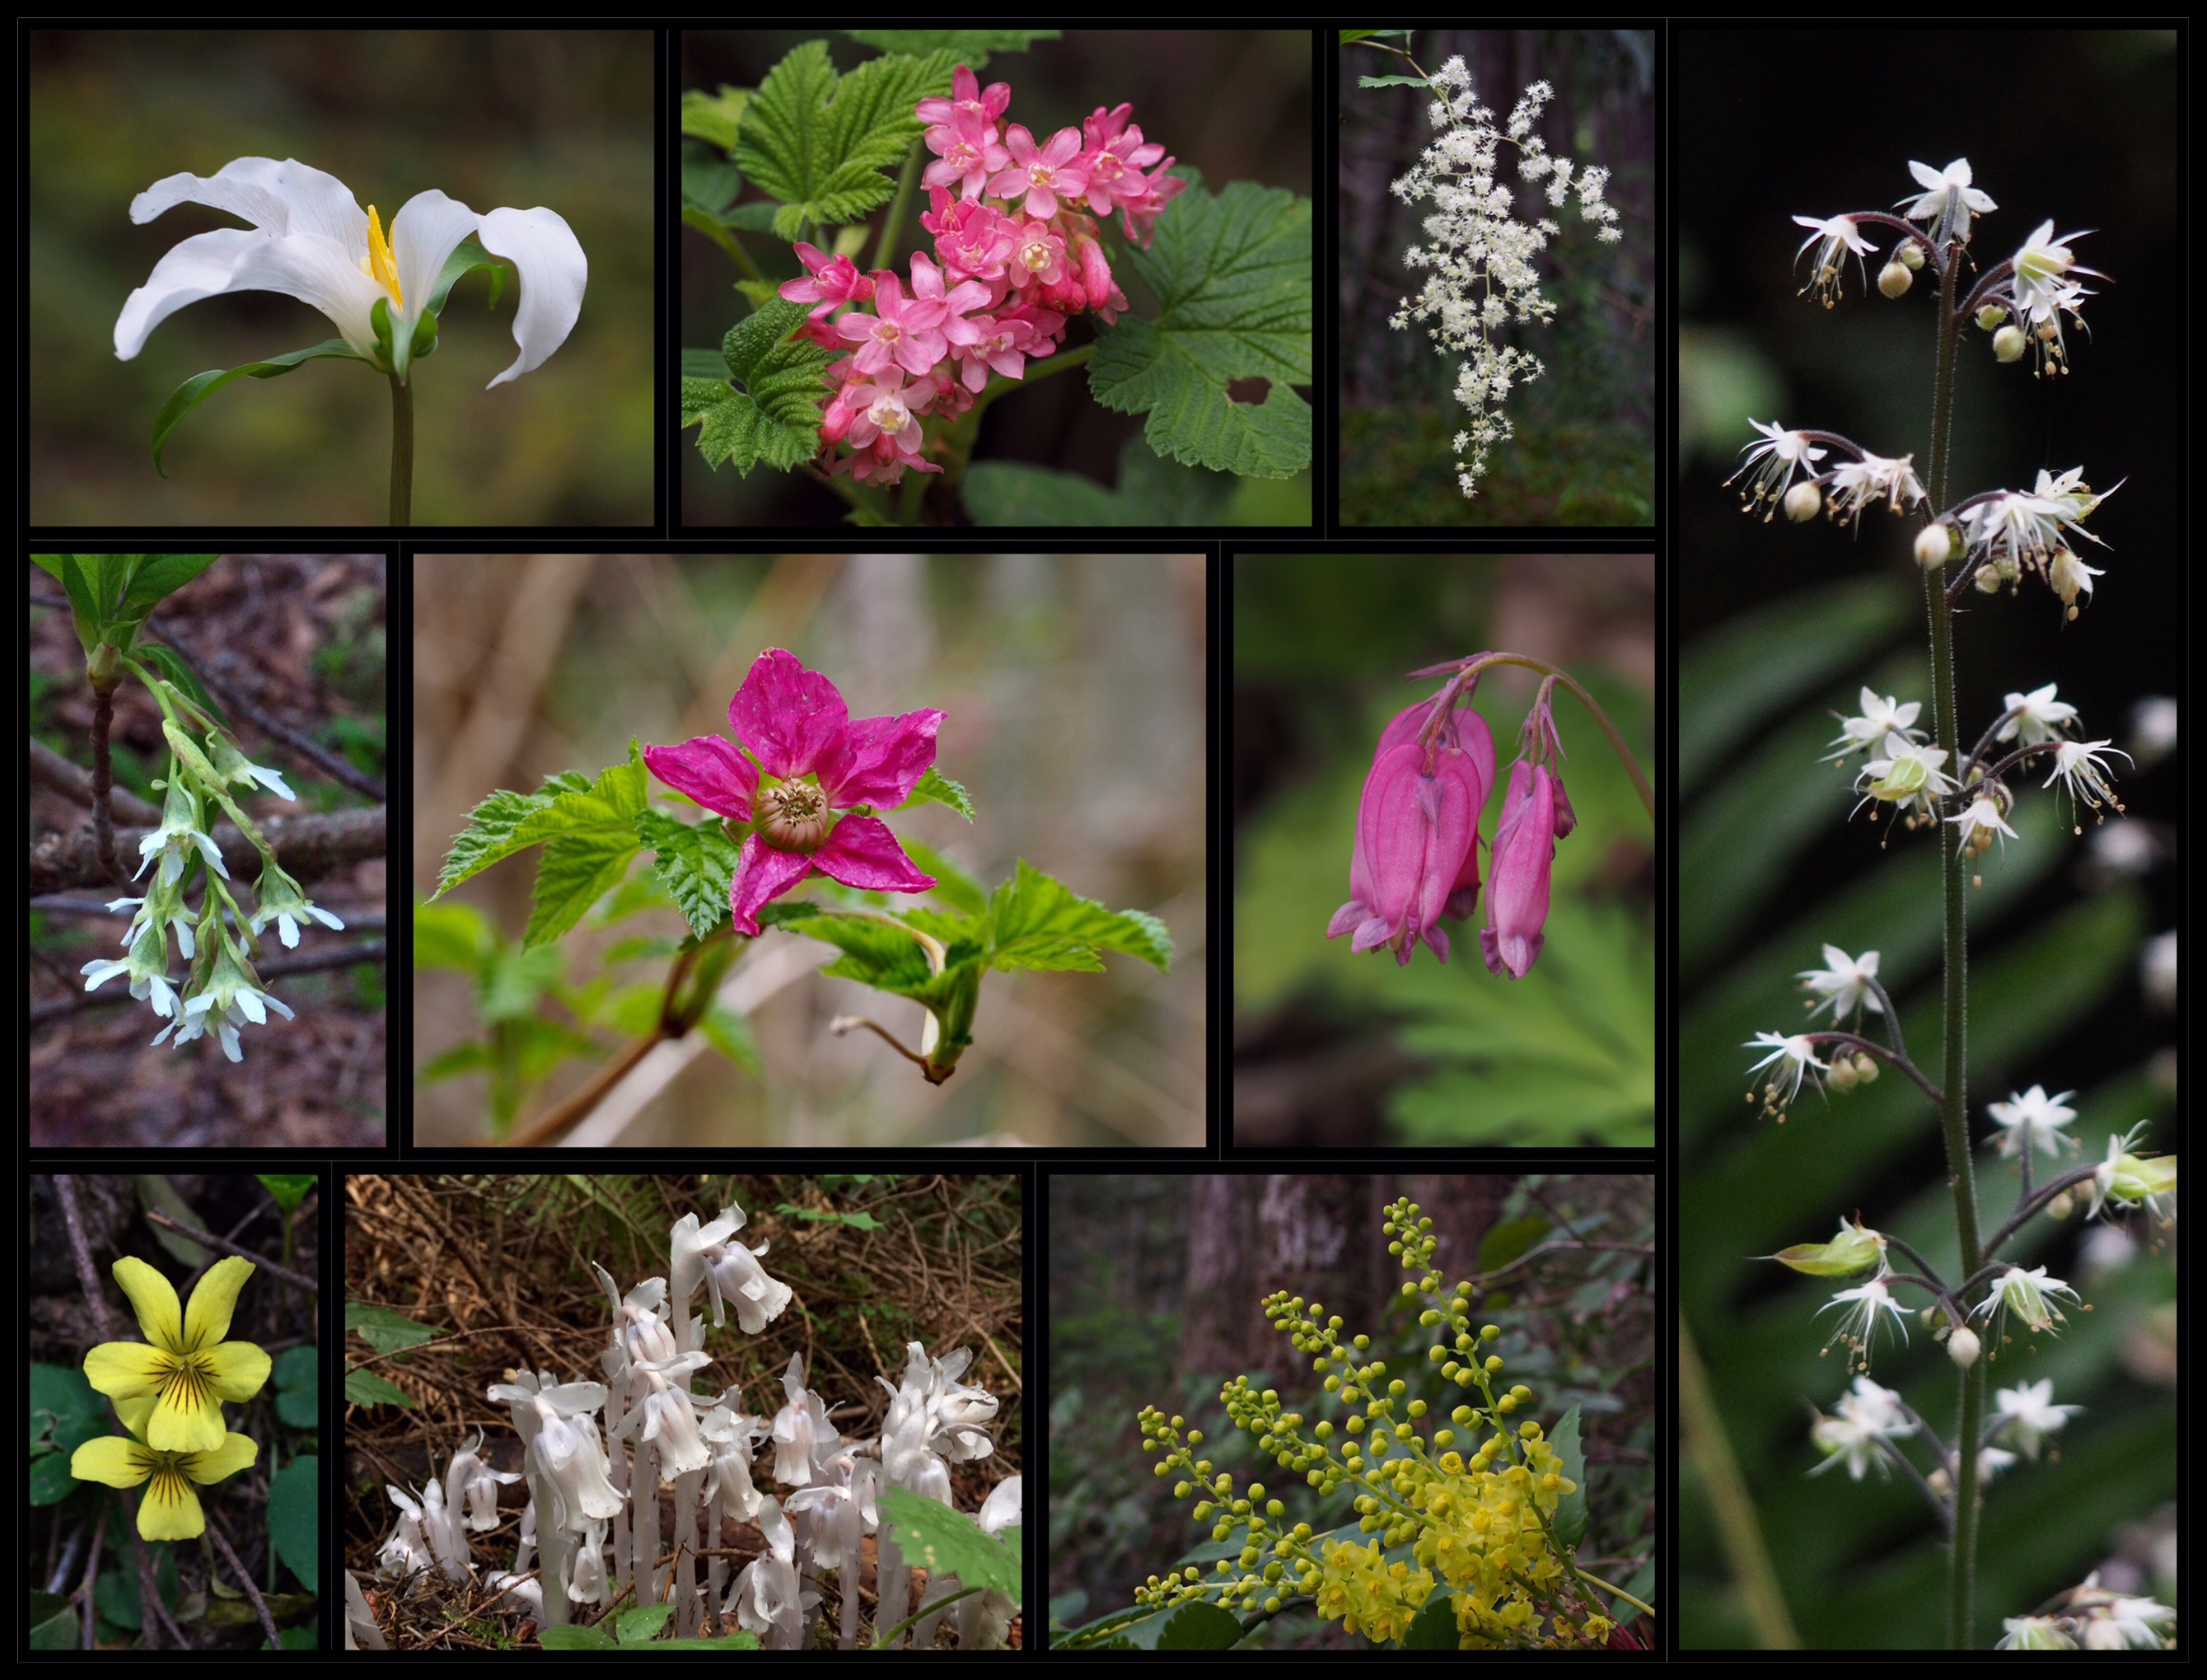 Although Little Si's shadowy woodland is not known for its wildflowers, many still brighten the trailside throughout the seasons, including Pacific trilliums (Trillium ovatum) (top row, left), red-flowering currants (Ribes sanguineum) (top row, left center), ocean-spray (Holodiscus discolor) (top row, right center), cut-leaved foamflowers (Tiarella trifoliata) (right), oso berries (Oemleria cerasiformis) (middle row, left), salmonberries (Rubus spectabilis) (middle row, left center), Pacific bleeding hearts (Dicentra formosa) (middle row, right center), round-leaved violets (Viola orbiculata) (lower row, left), ghost pipes (Monotropa uniflora) (lower row, left center), and Cascade Oregon-grapes (Berberis nervosa a.k.a. Mahonia nervosa) (lower row, right center). Little Si Trail and Boulder Garden Loop, March, April, and July 2016 and 2019.